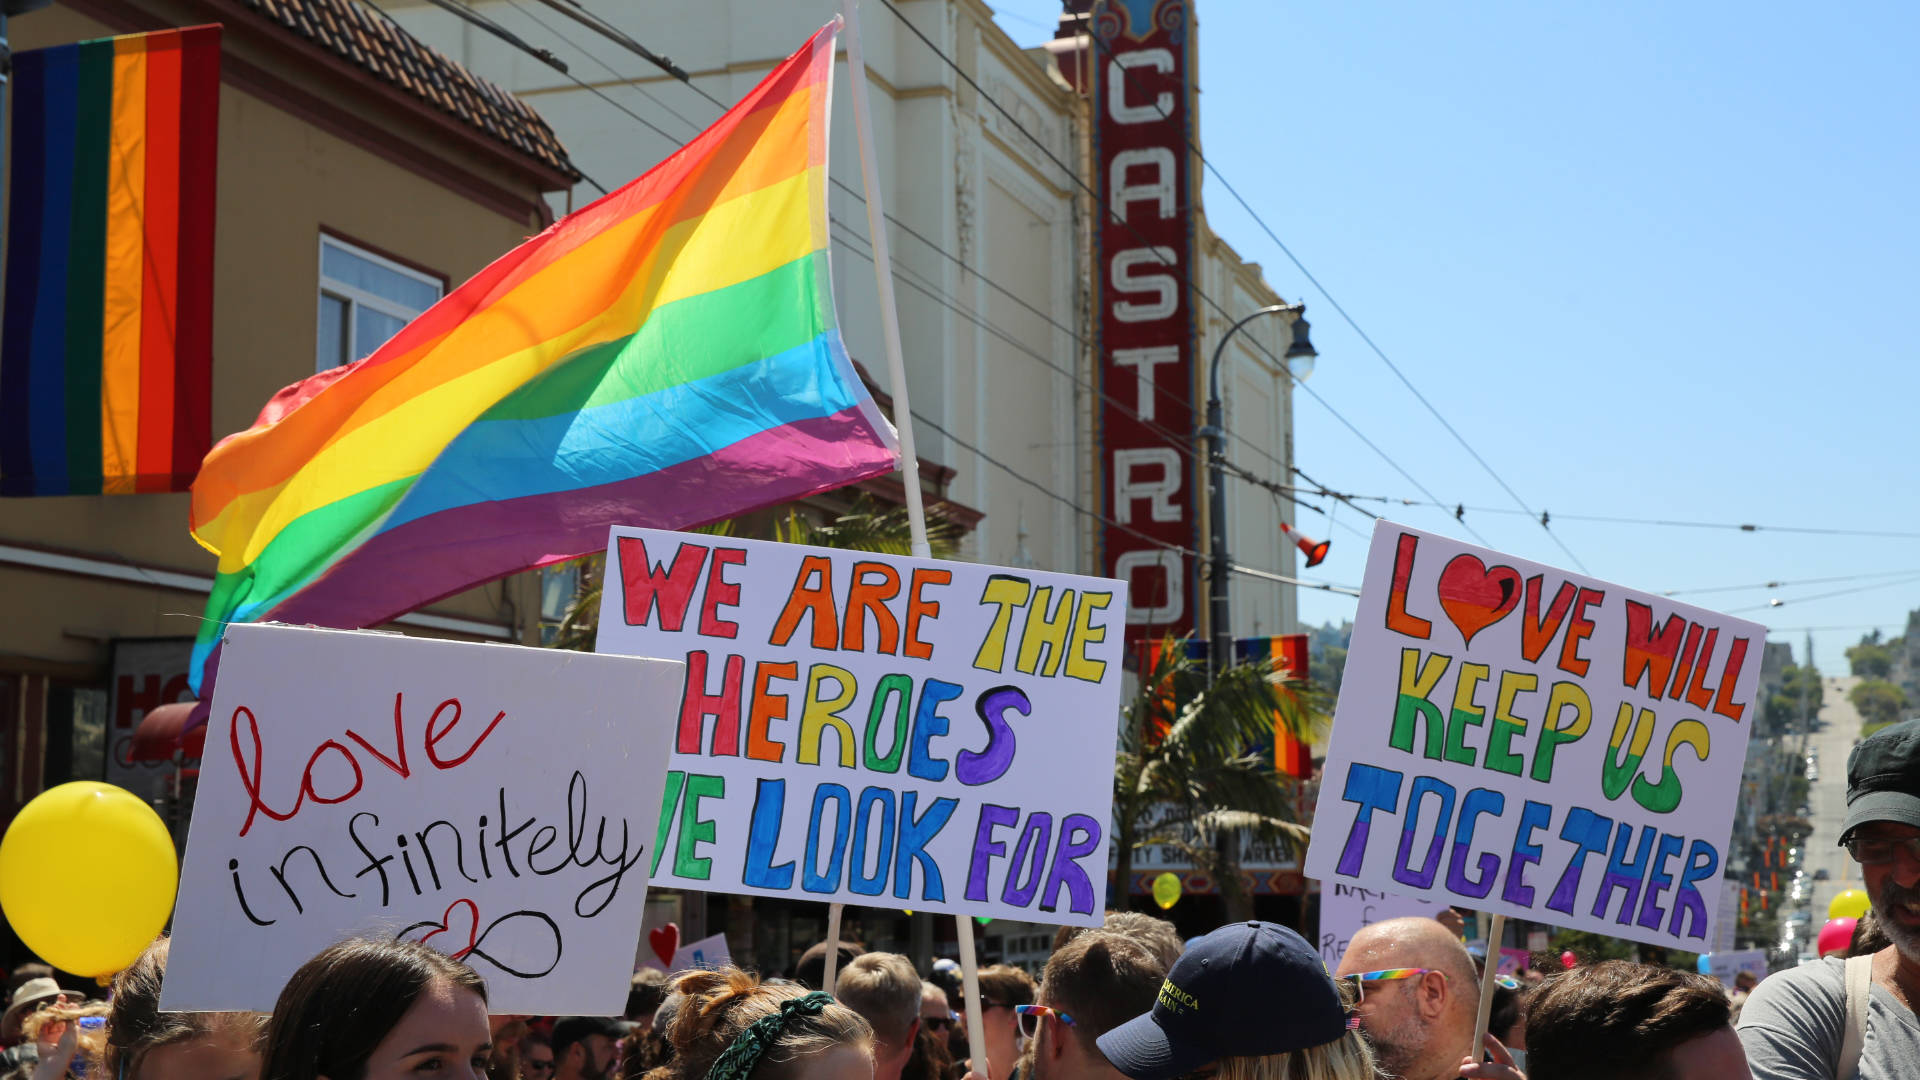 Signs at the Come Together rally in San Francisco's Castro District Photo: Kevin L. Jones/KQED